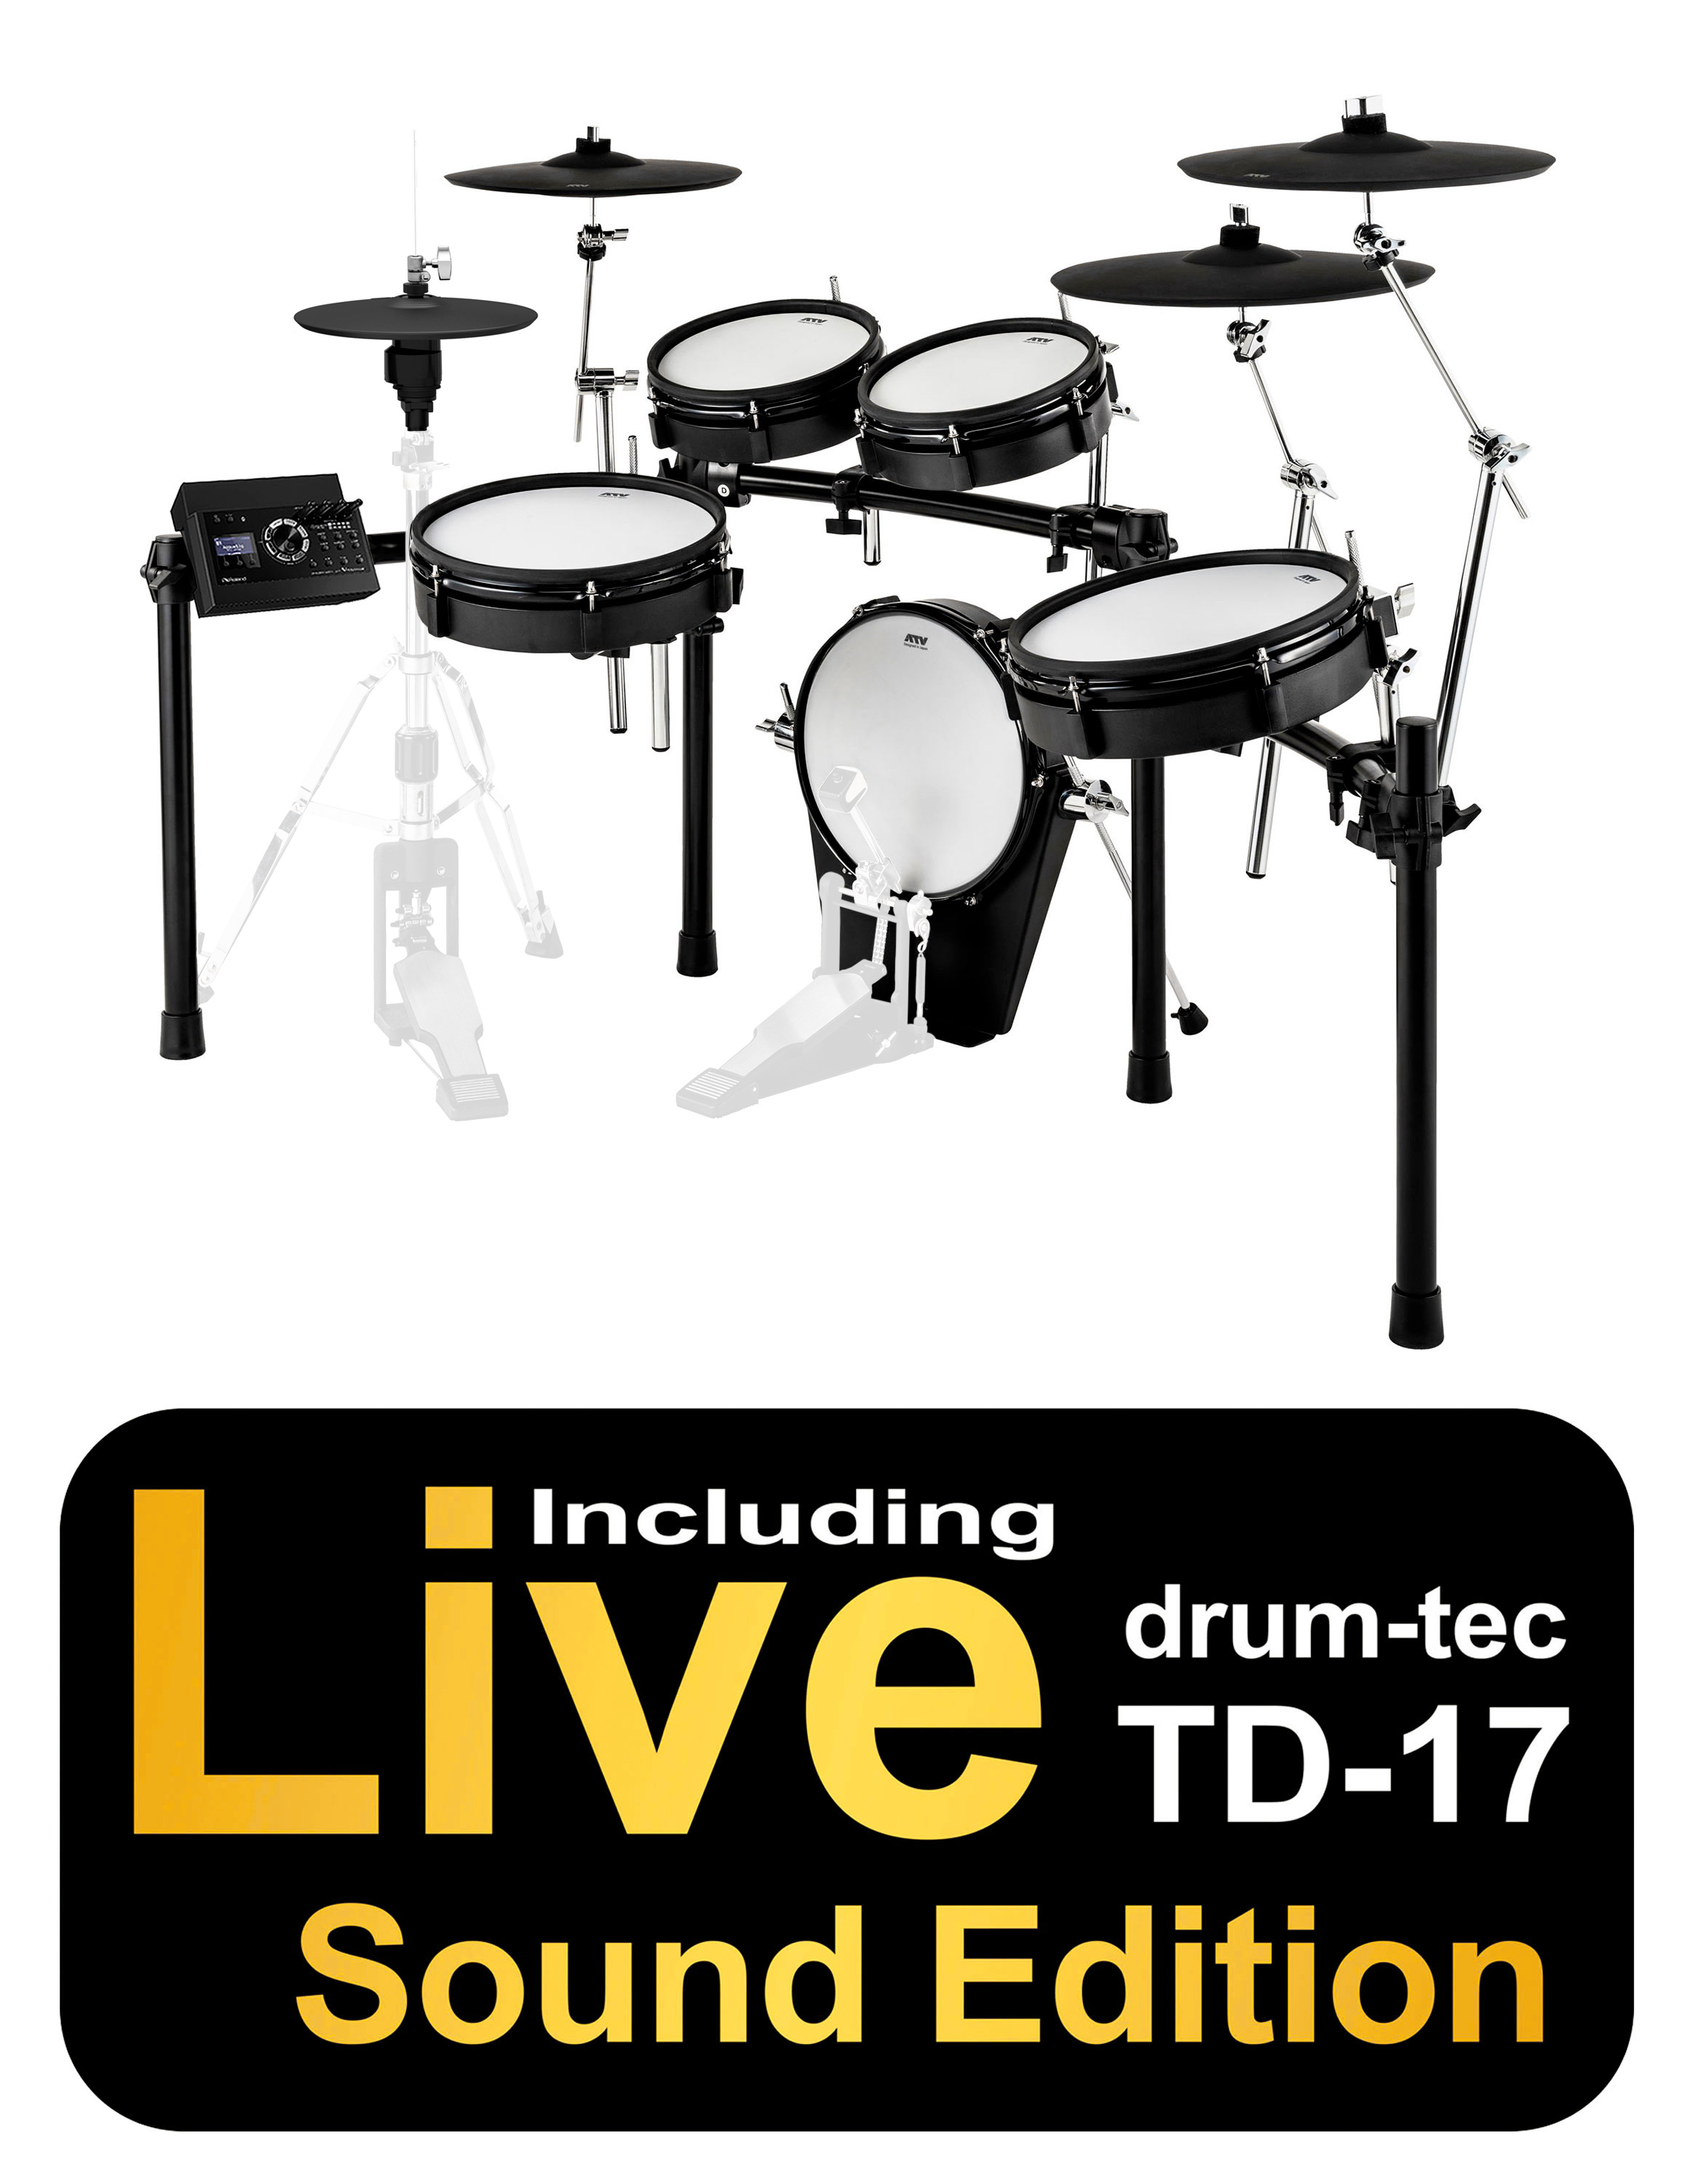 www.drum-tec.co.uk